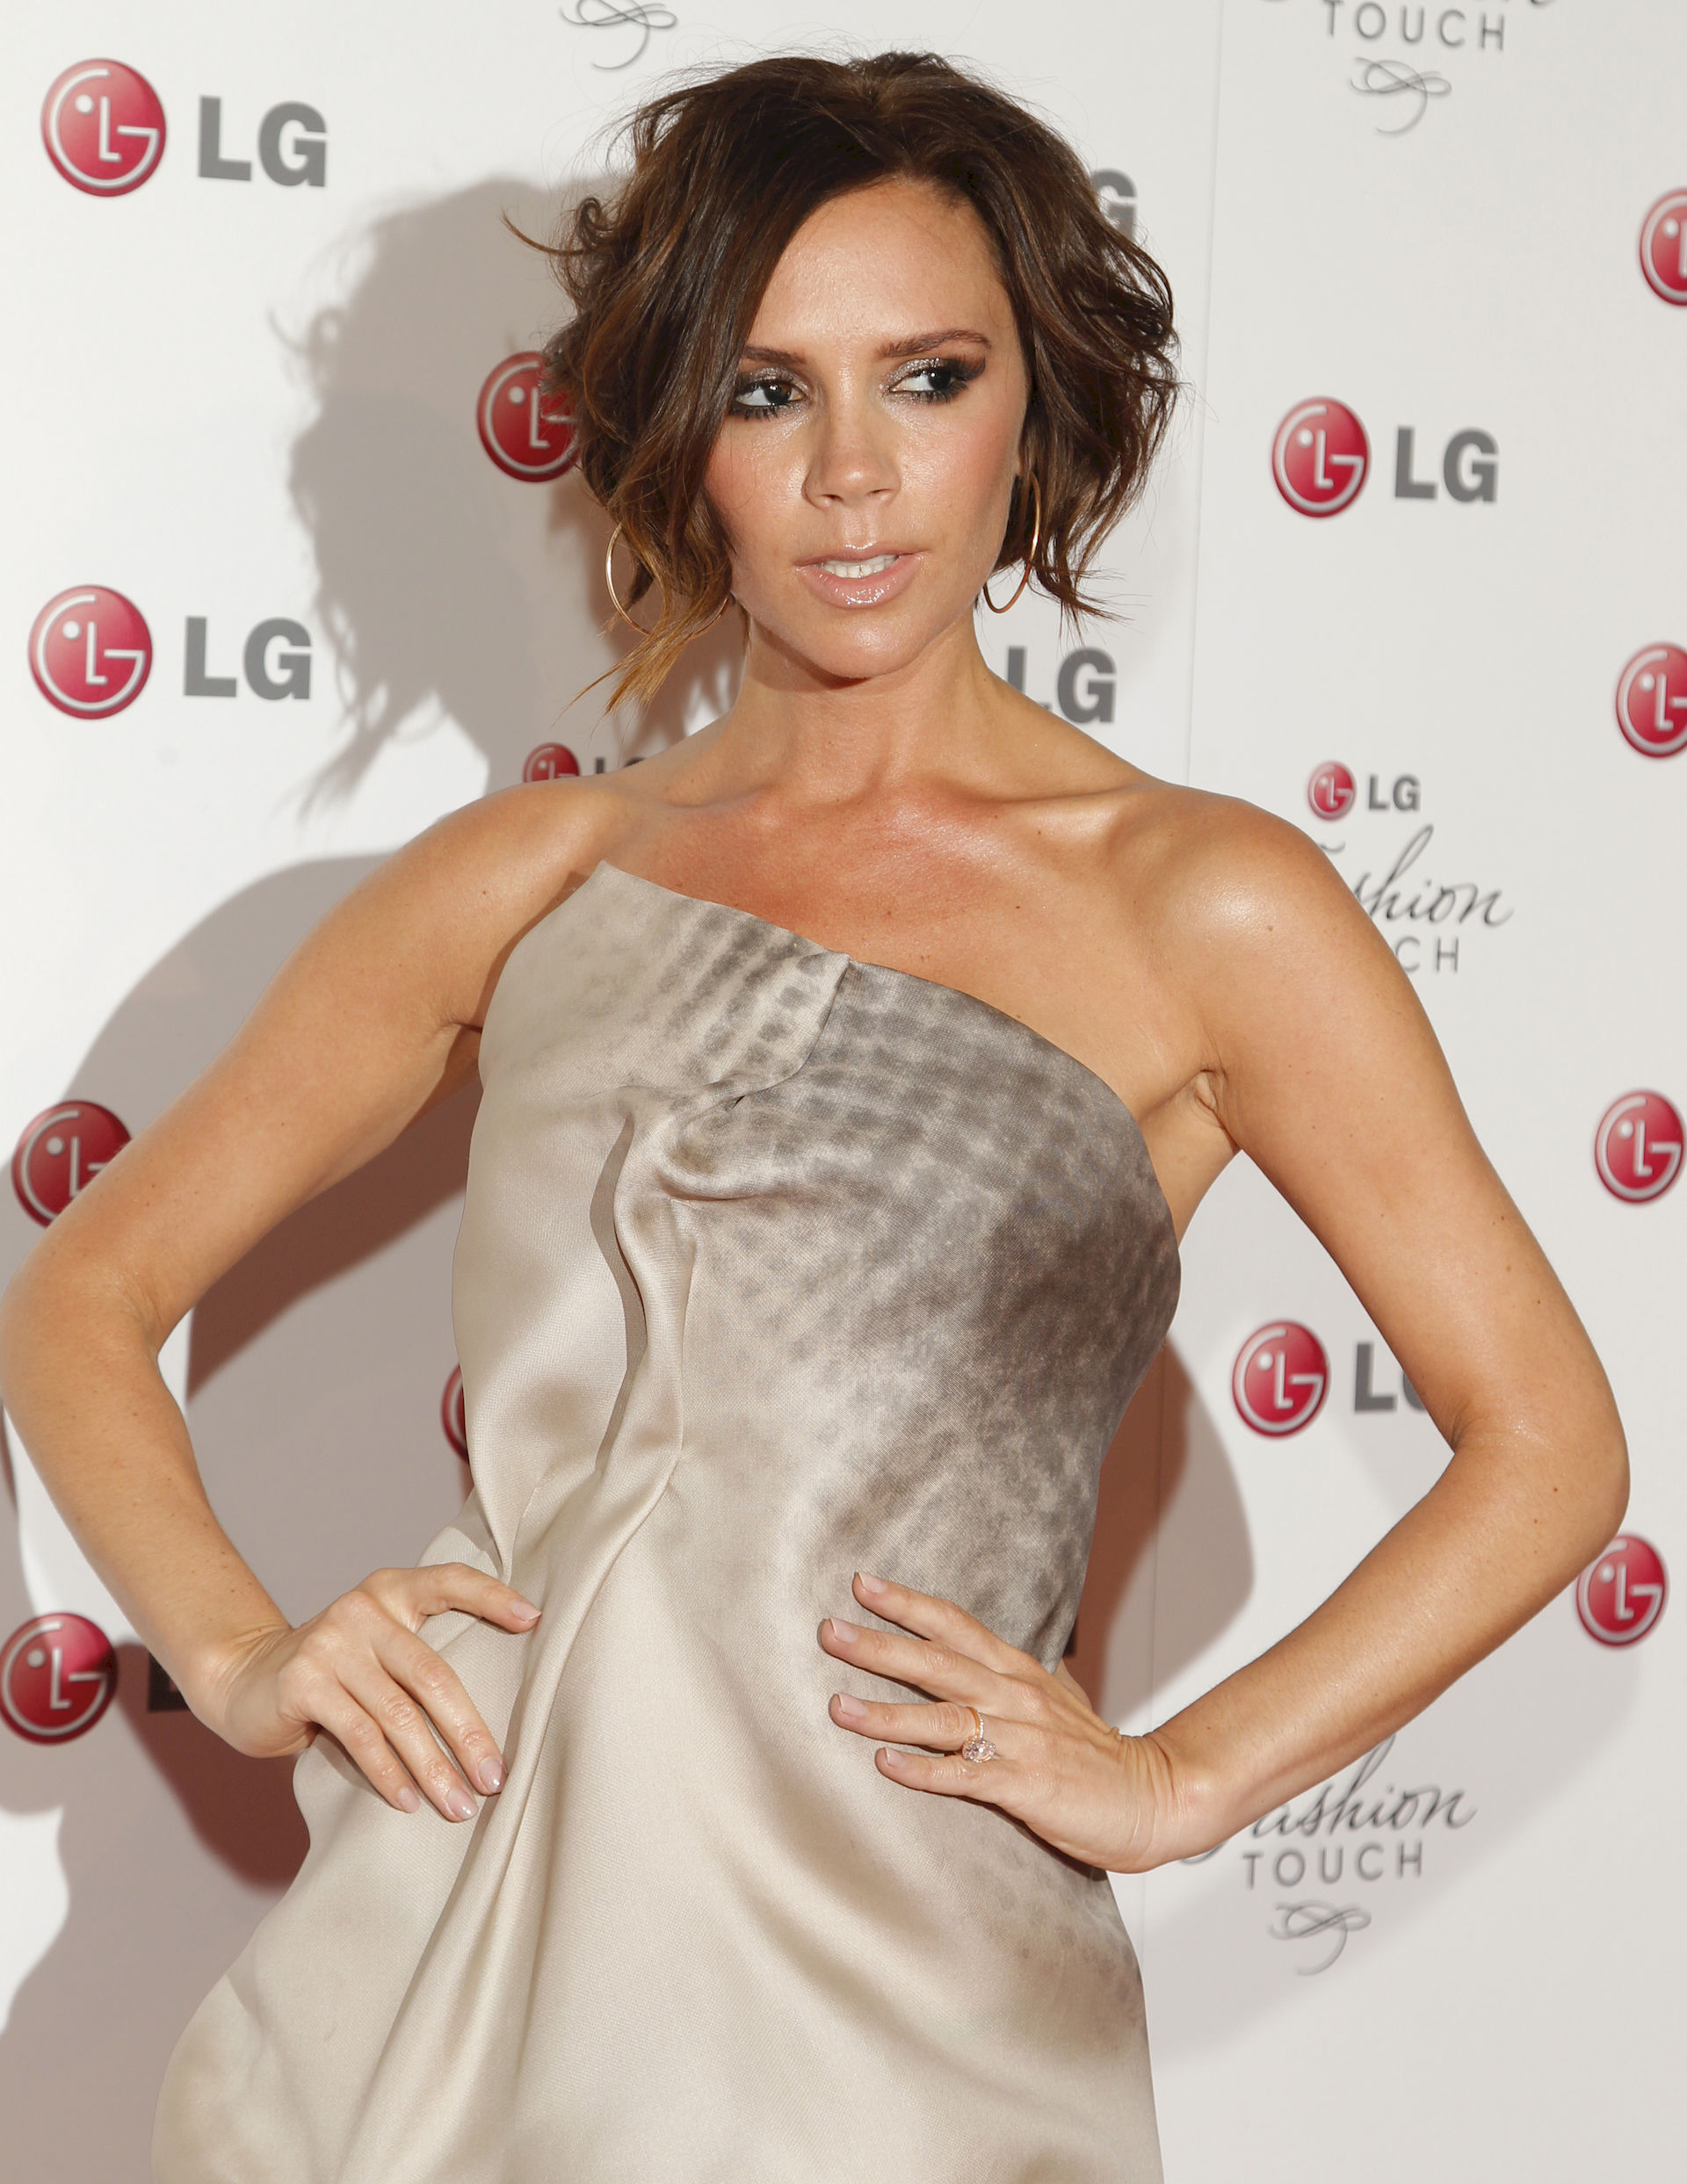 Photo of Victoria Beckham: English businesswoman, fashion designer and singer